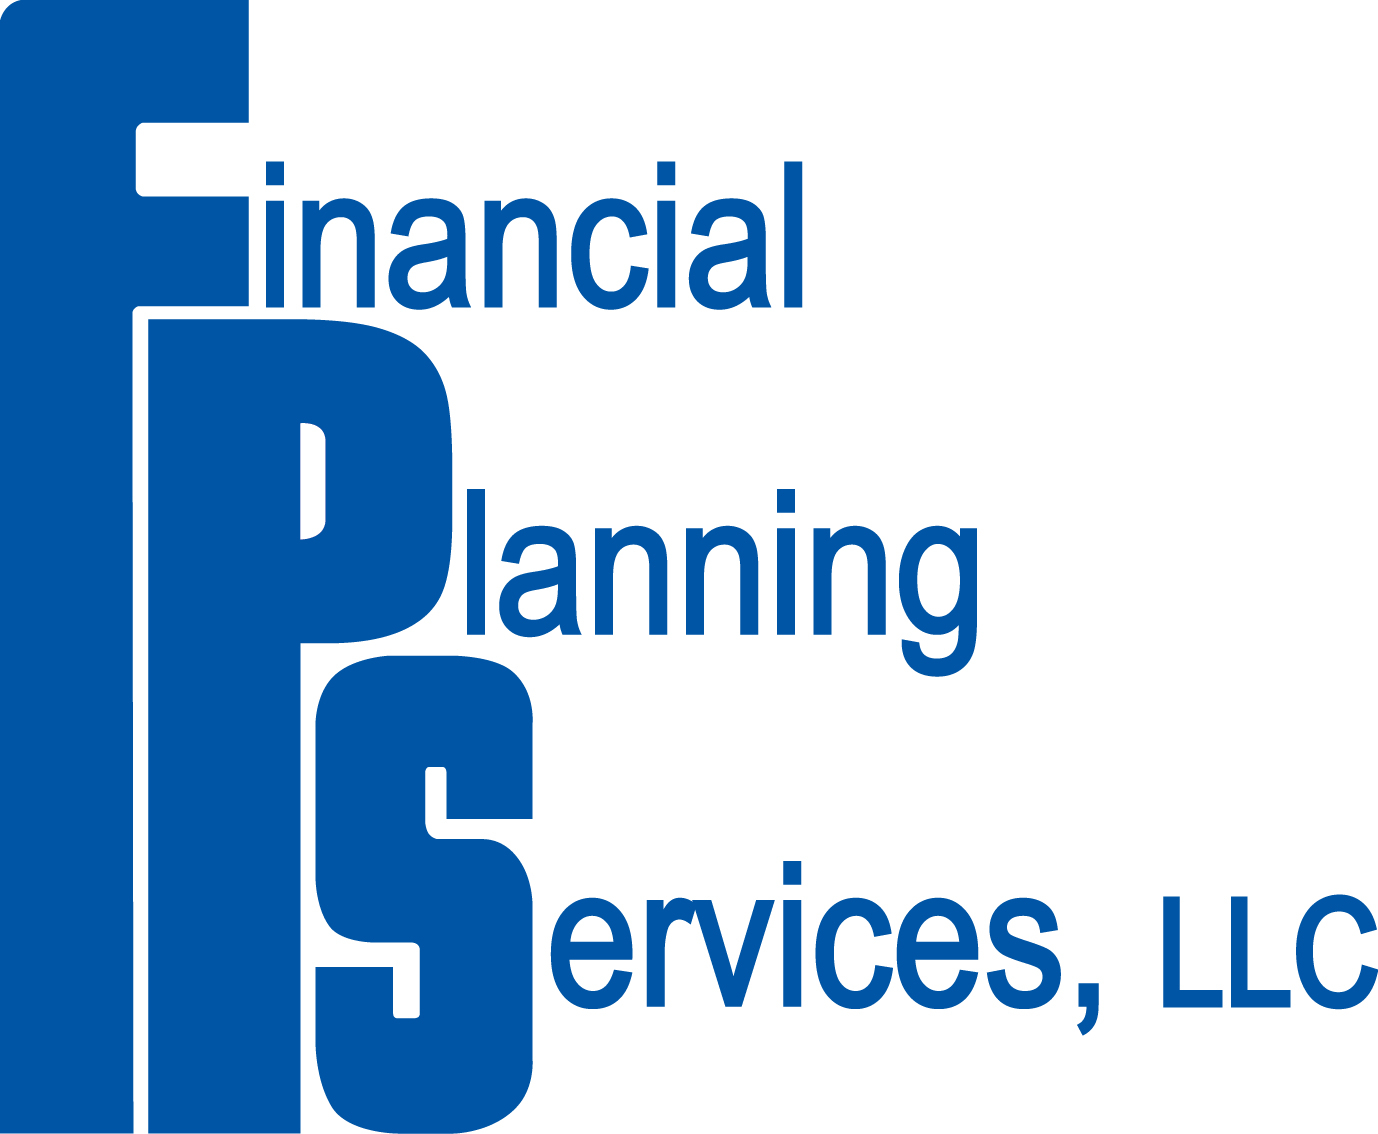 Financial Planning Services, LLC